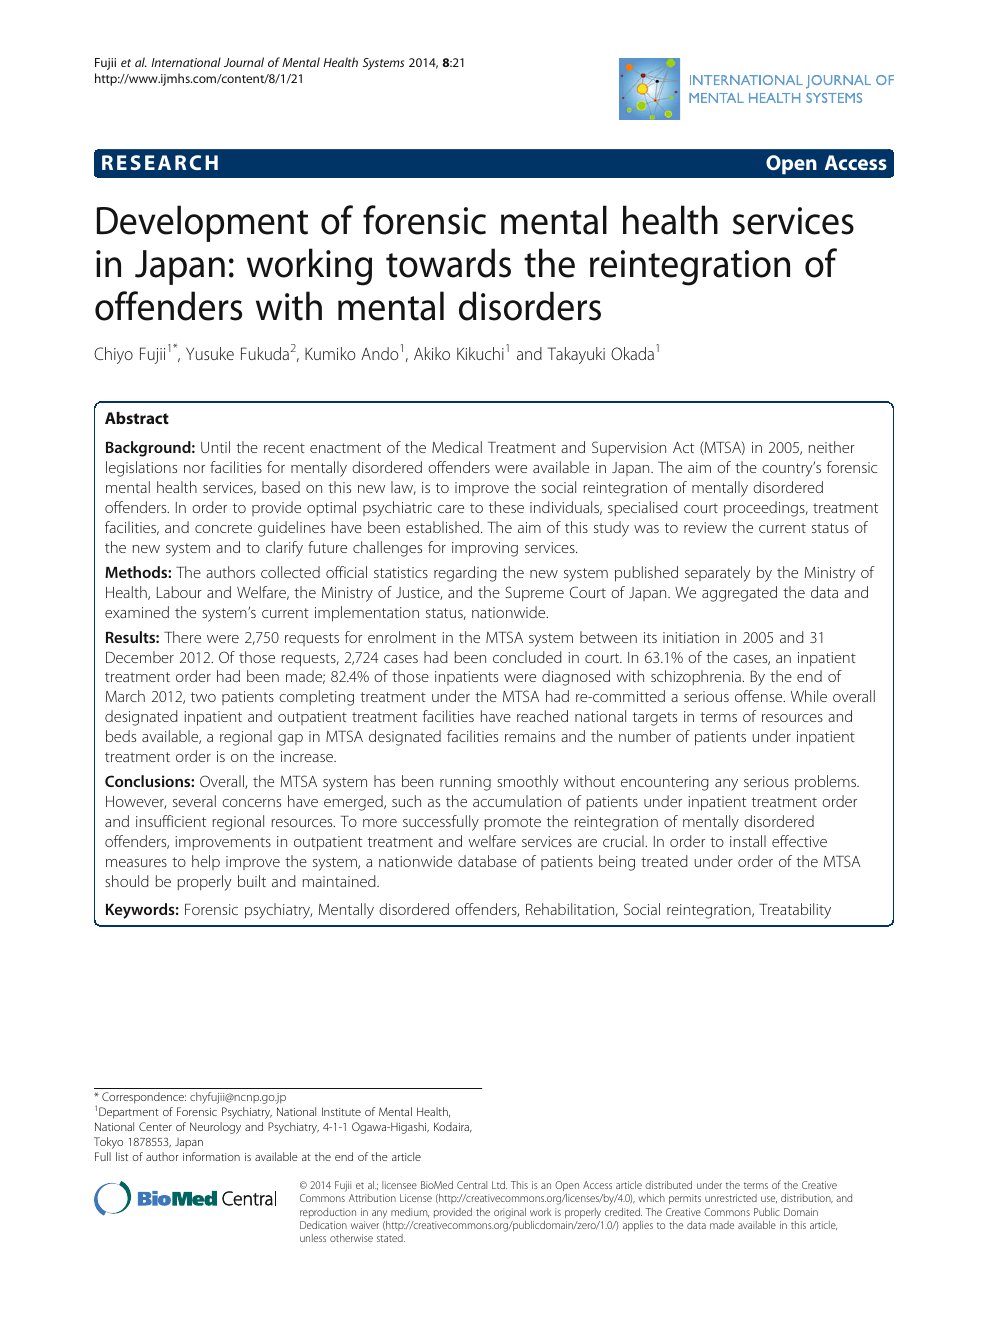 Development Of Forensic Mental Health Services In Japan Working Towards The Reintegration Of Offenders With Mental Disorders Topic Of Research Paper In Clinical Medicine Download Scholarly Article Pdf And Read For